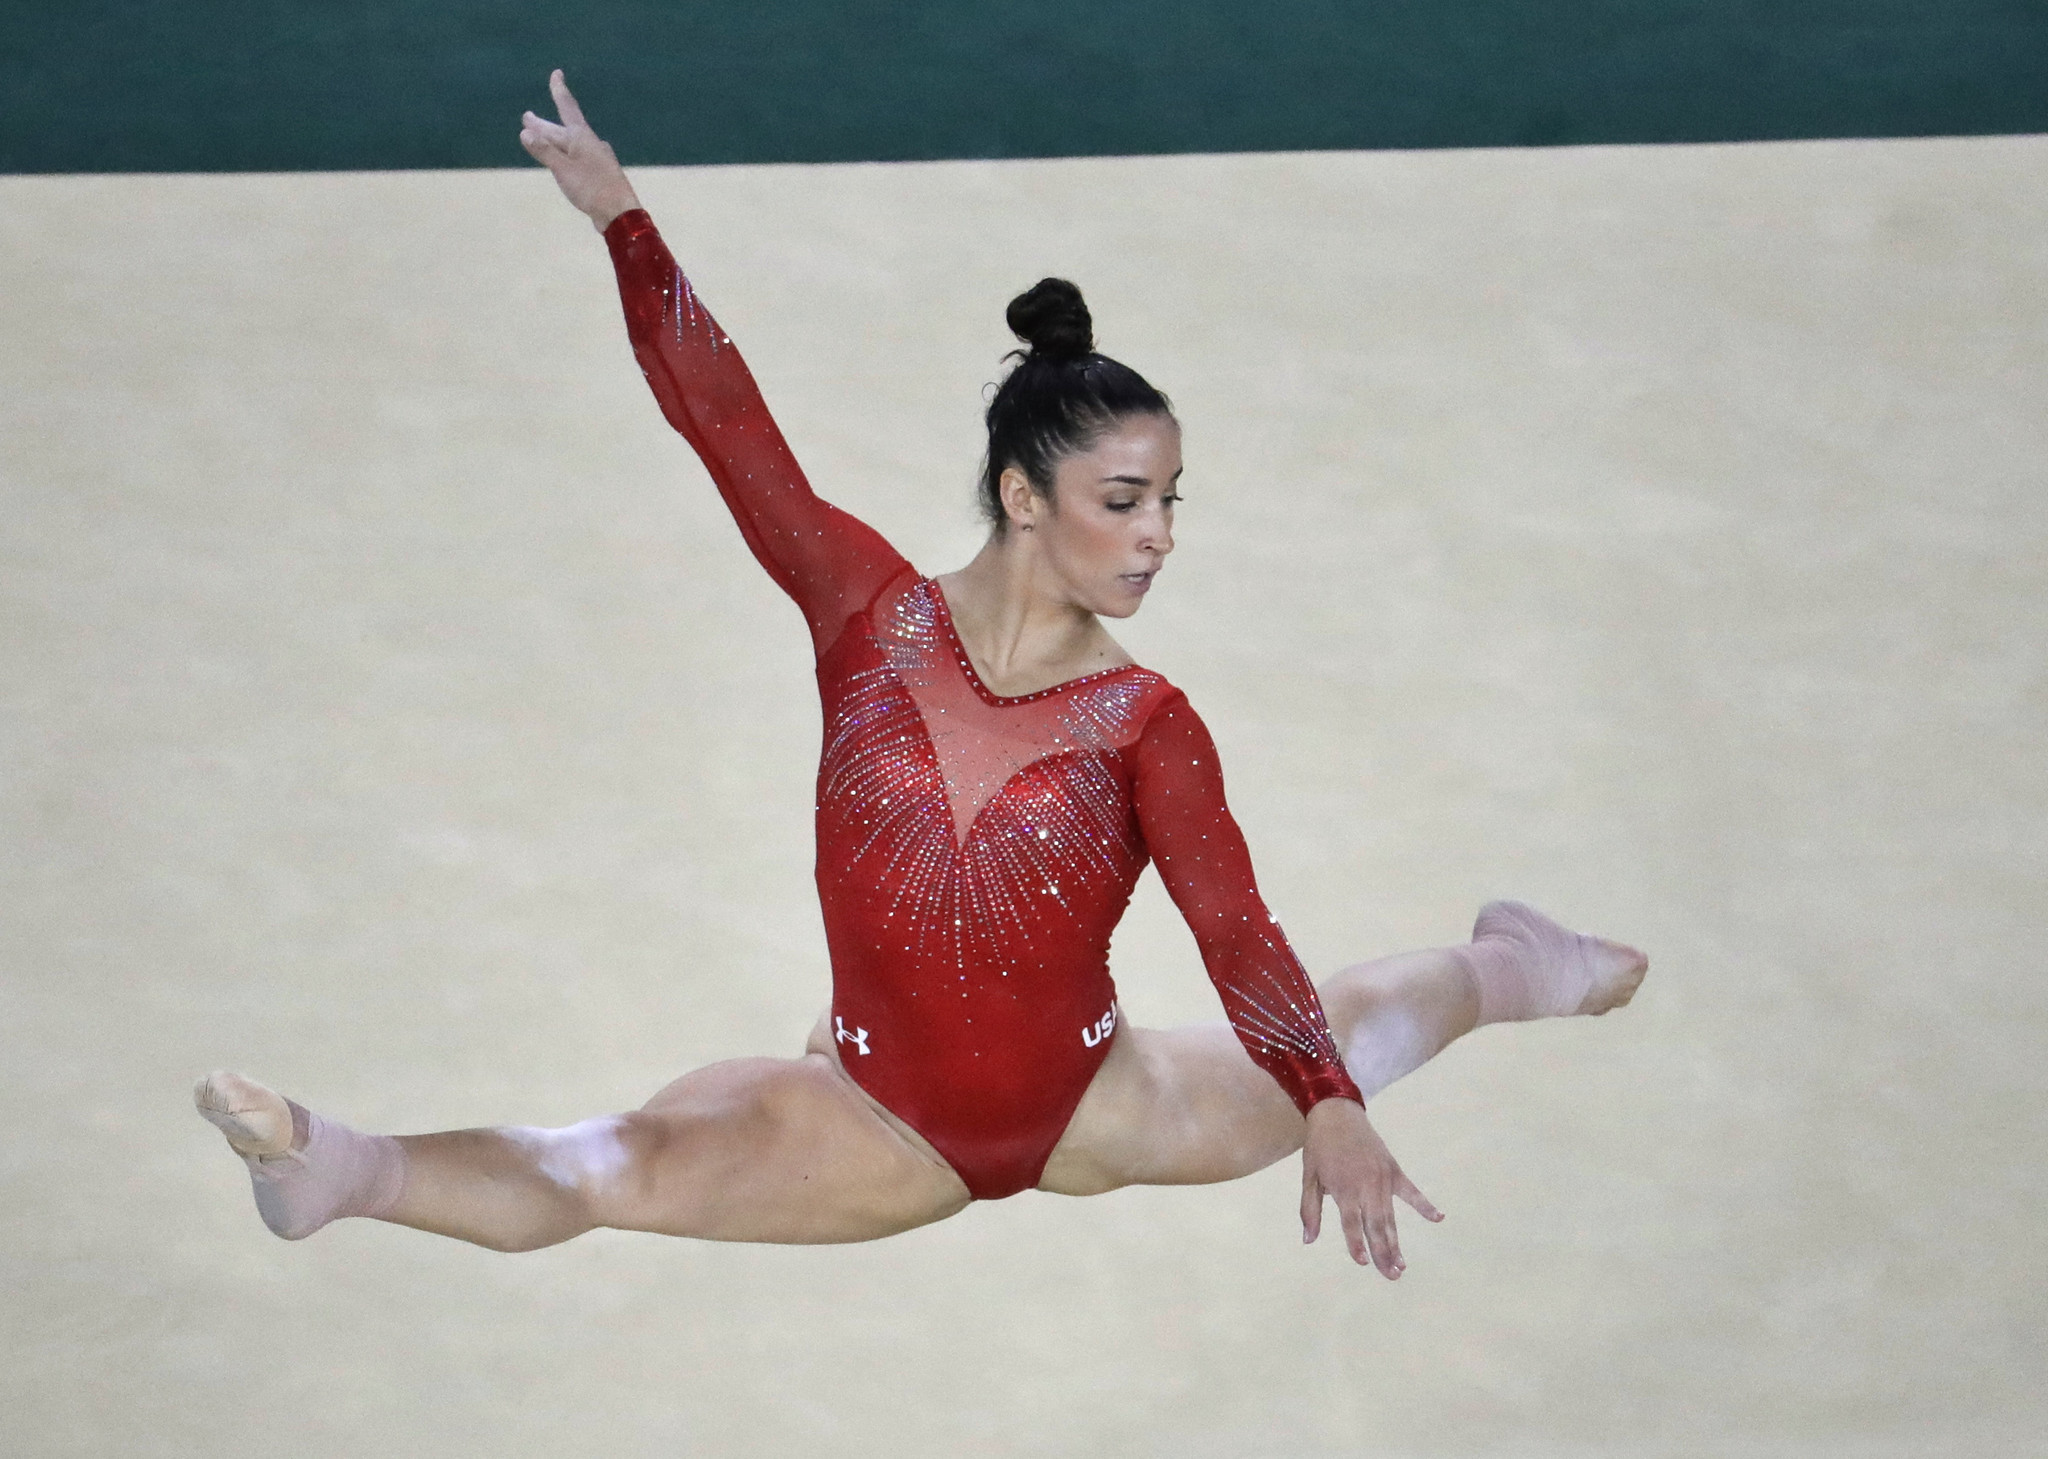 Company Offers Replicas Of 1 200 Usa Gymnastics Leotards